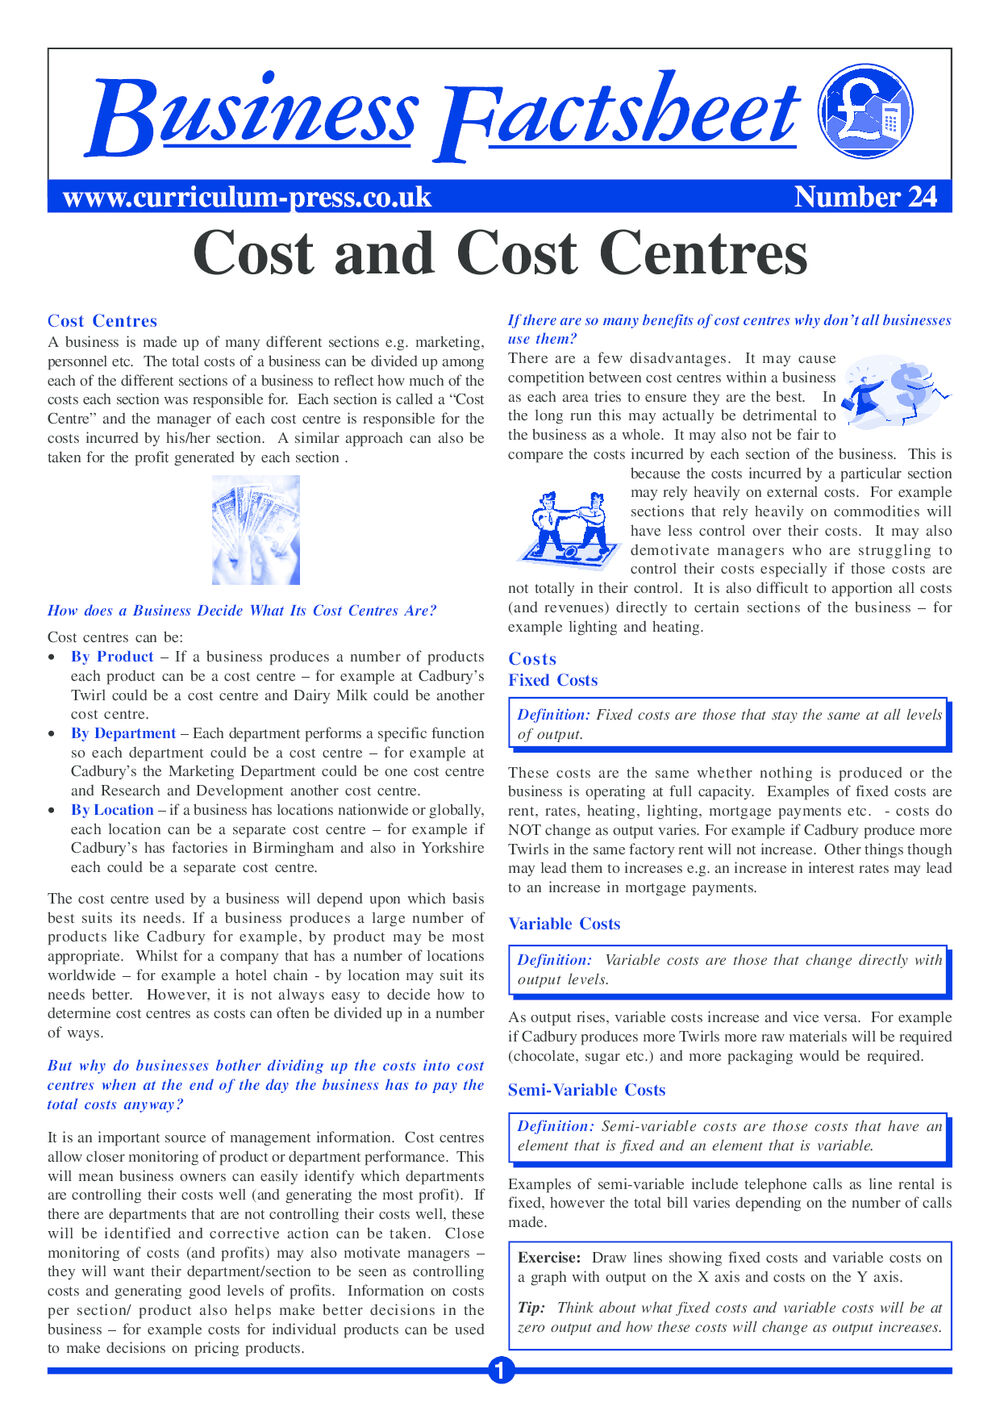 Cost and Cost Centres - Curriculum Press